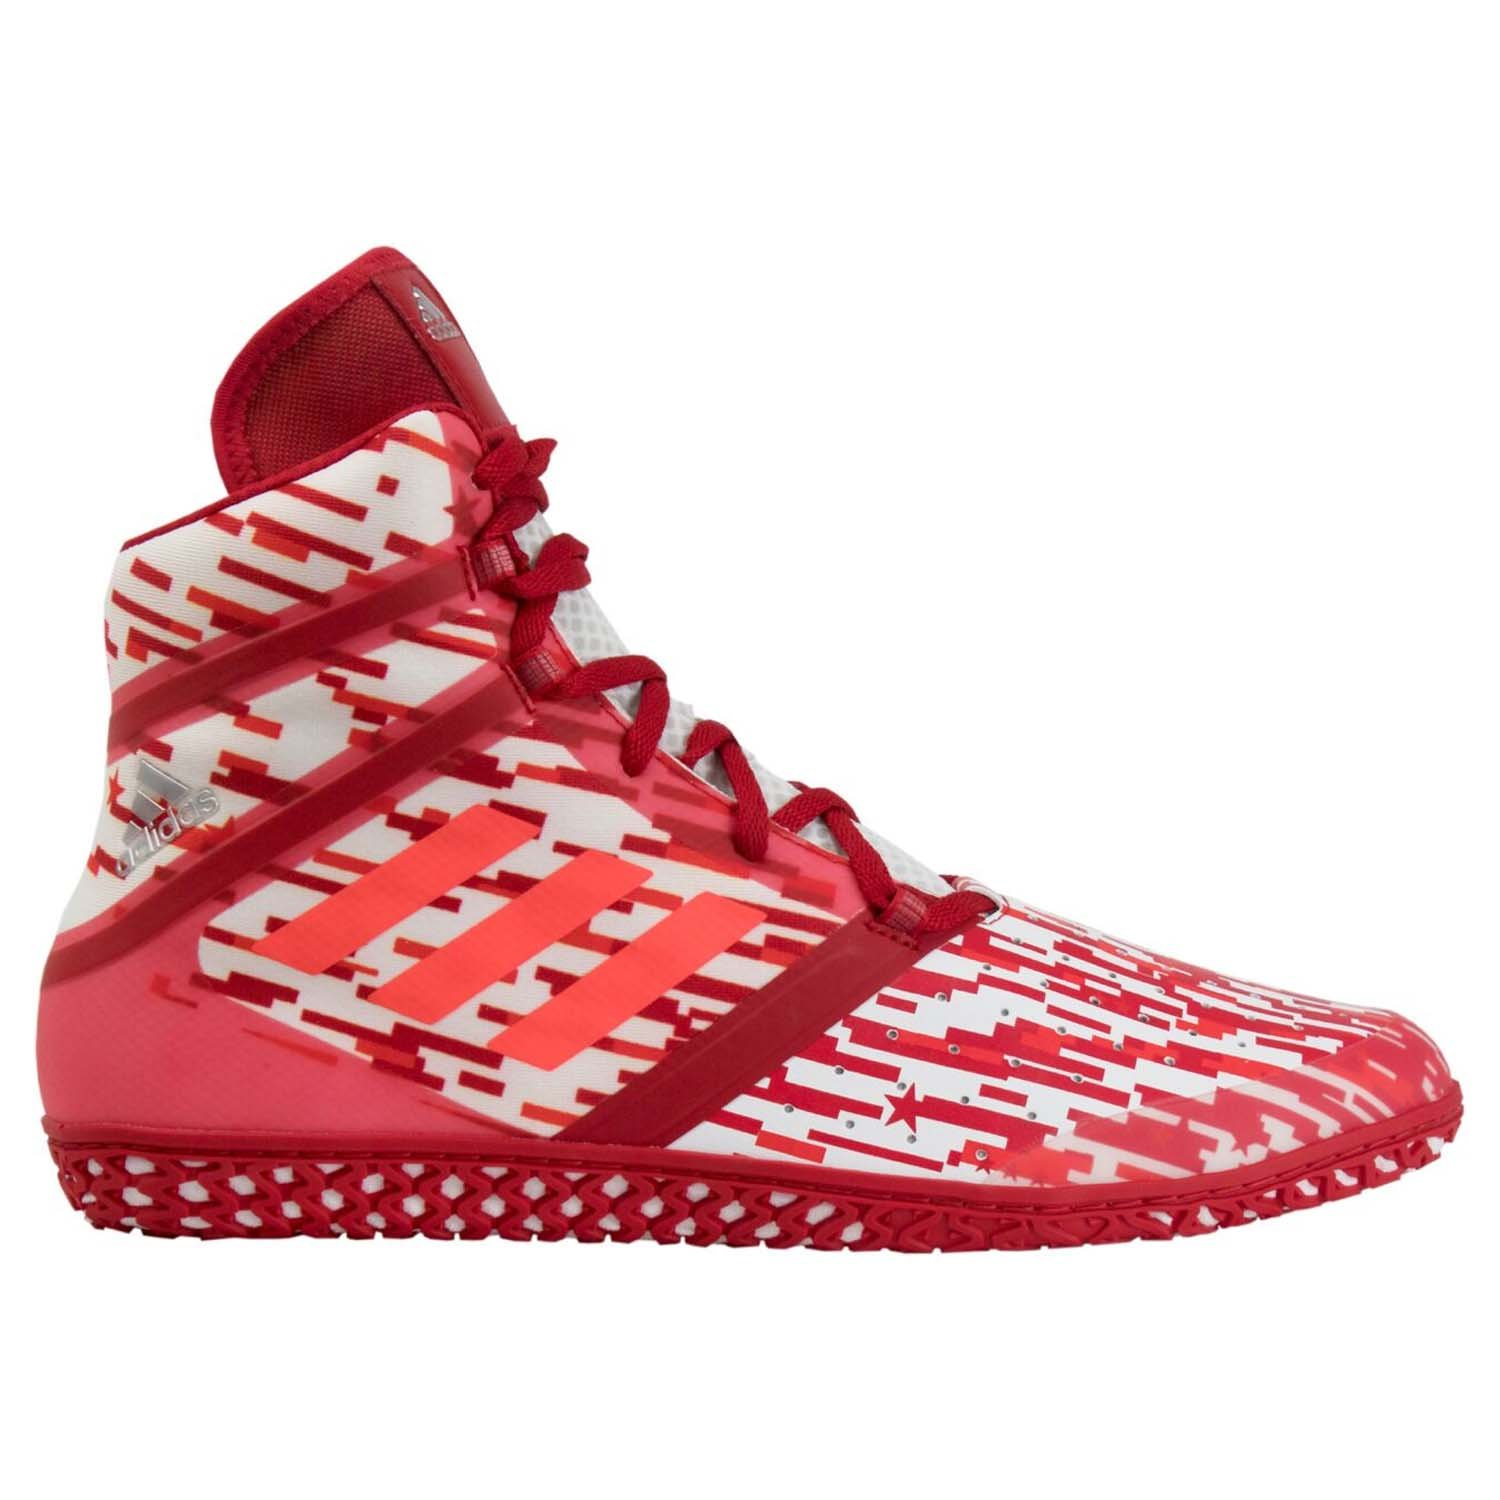 adidas Impact Men's Wrestling Shoes, Red Digital Print, Size 10 by Adidas